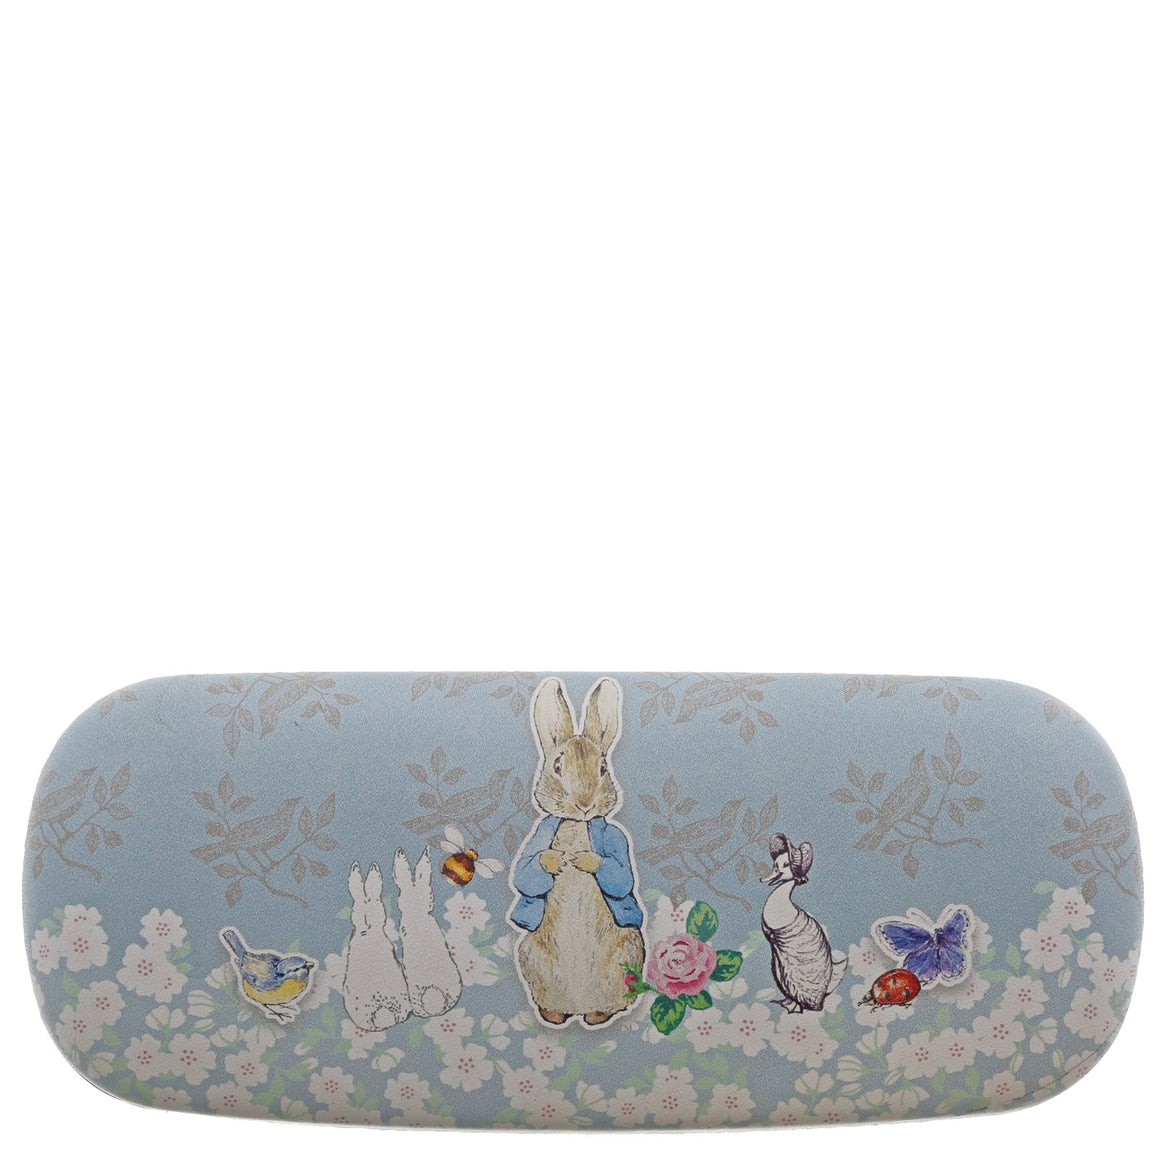 Peter Rabbit Glasses Case by Beatrix Potter